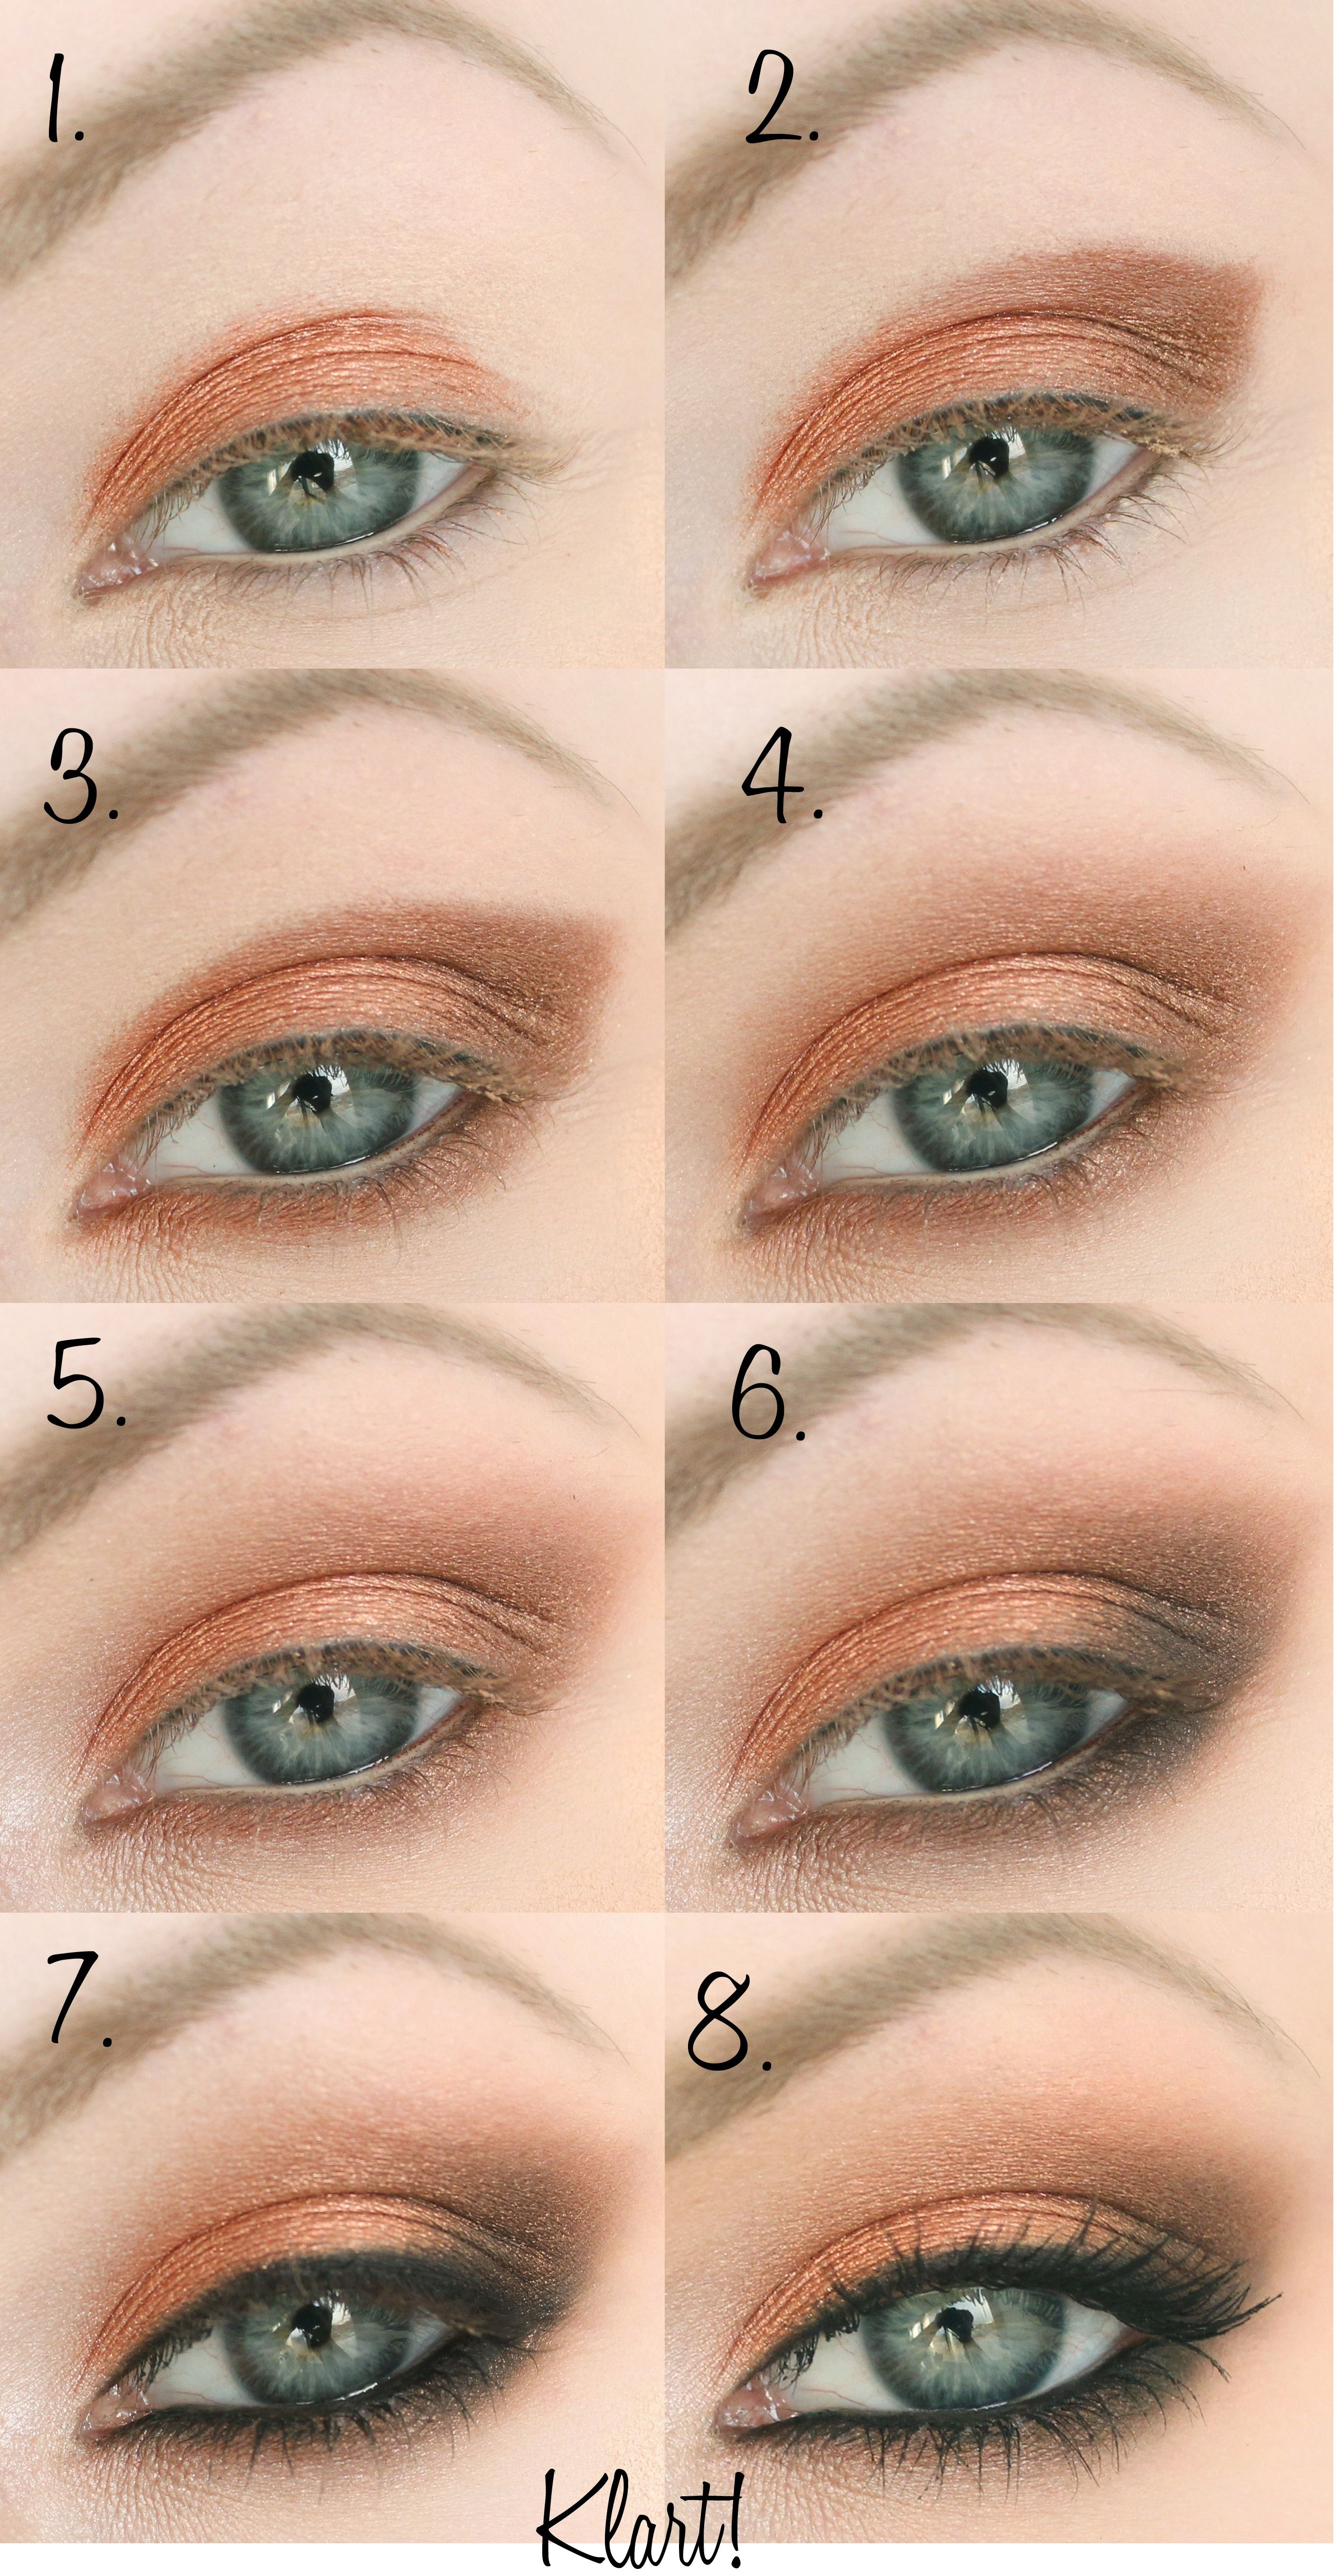 Jennifer Lawrence Makeup Tutorial   Haare&beauty   Pinterest within Makeup Tips For Gray-Green Eyes